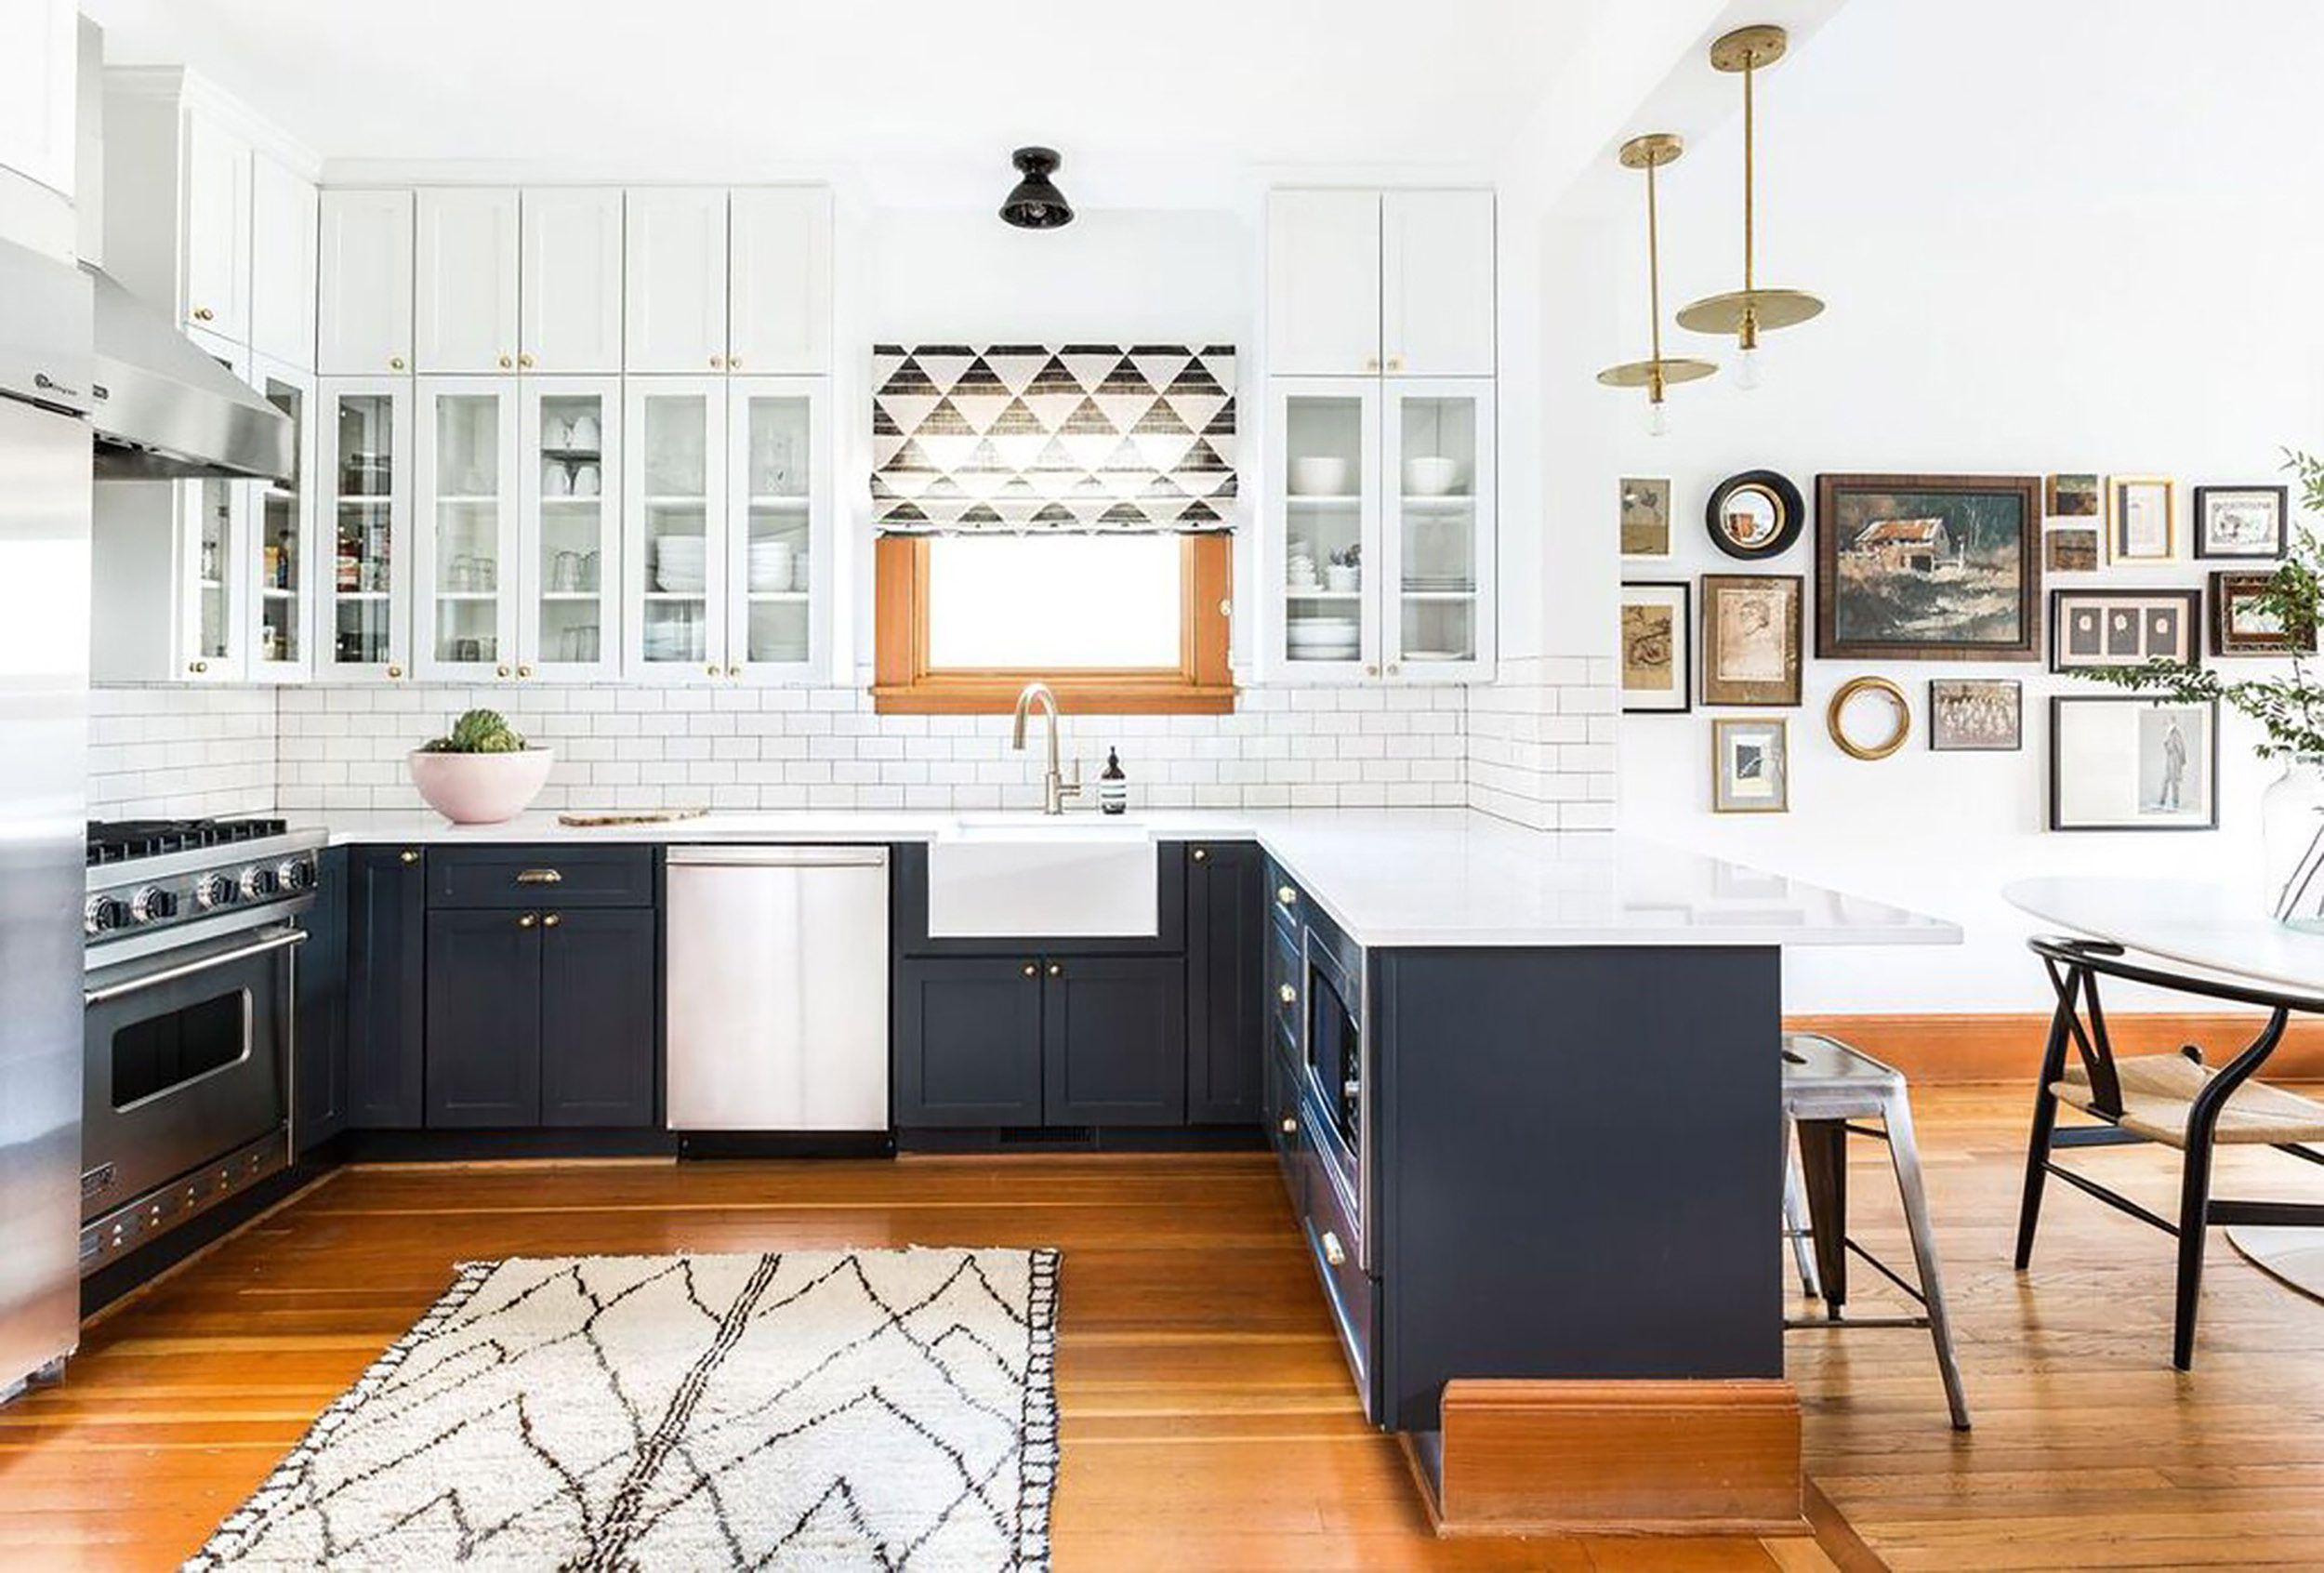 Kitchens With No Uppers Insanely Gorgeous Or Just Insane Emily Henderson Kitchen Renovation Trends Kitchen Cabinet Trends Outdoor Kitchen Cabinets